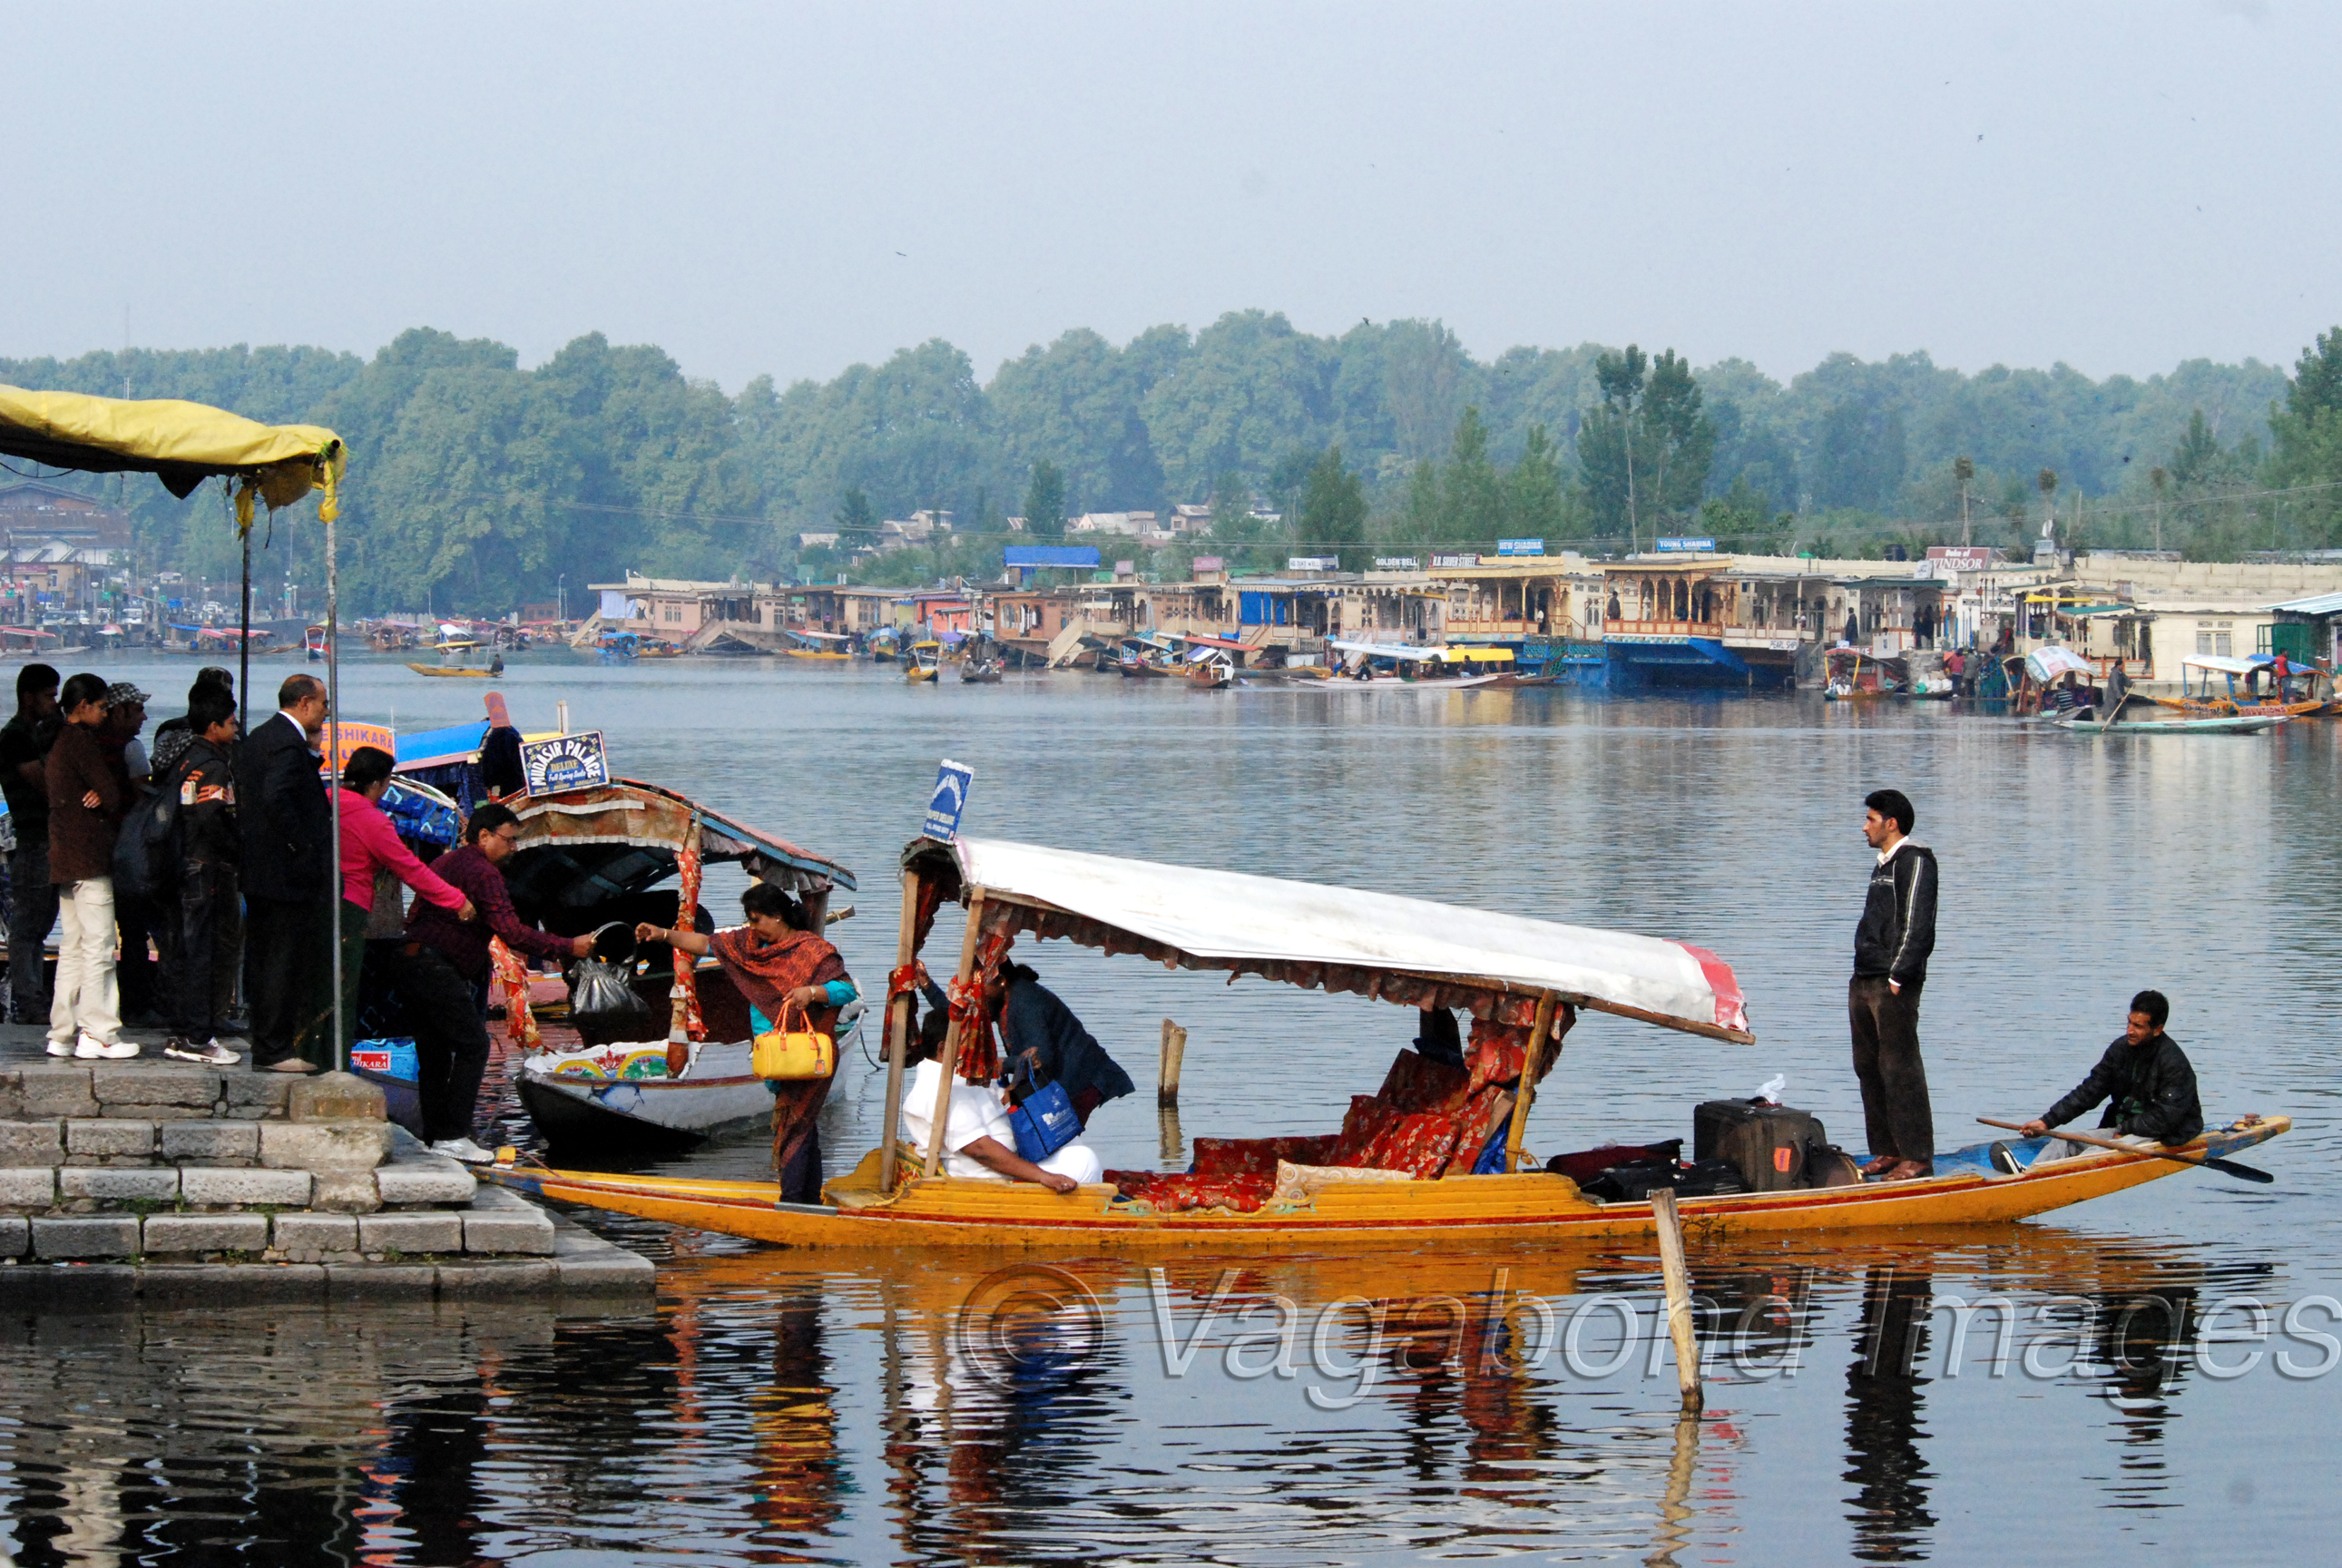 Tourists lining up at the Dal to go to houseboats or a Shikara ride